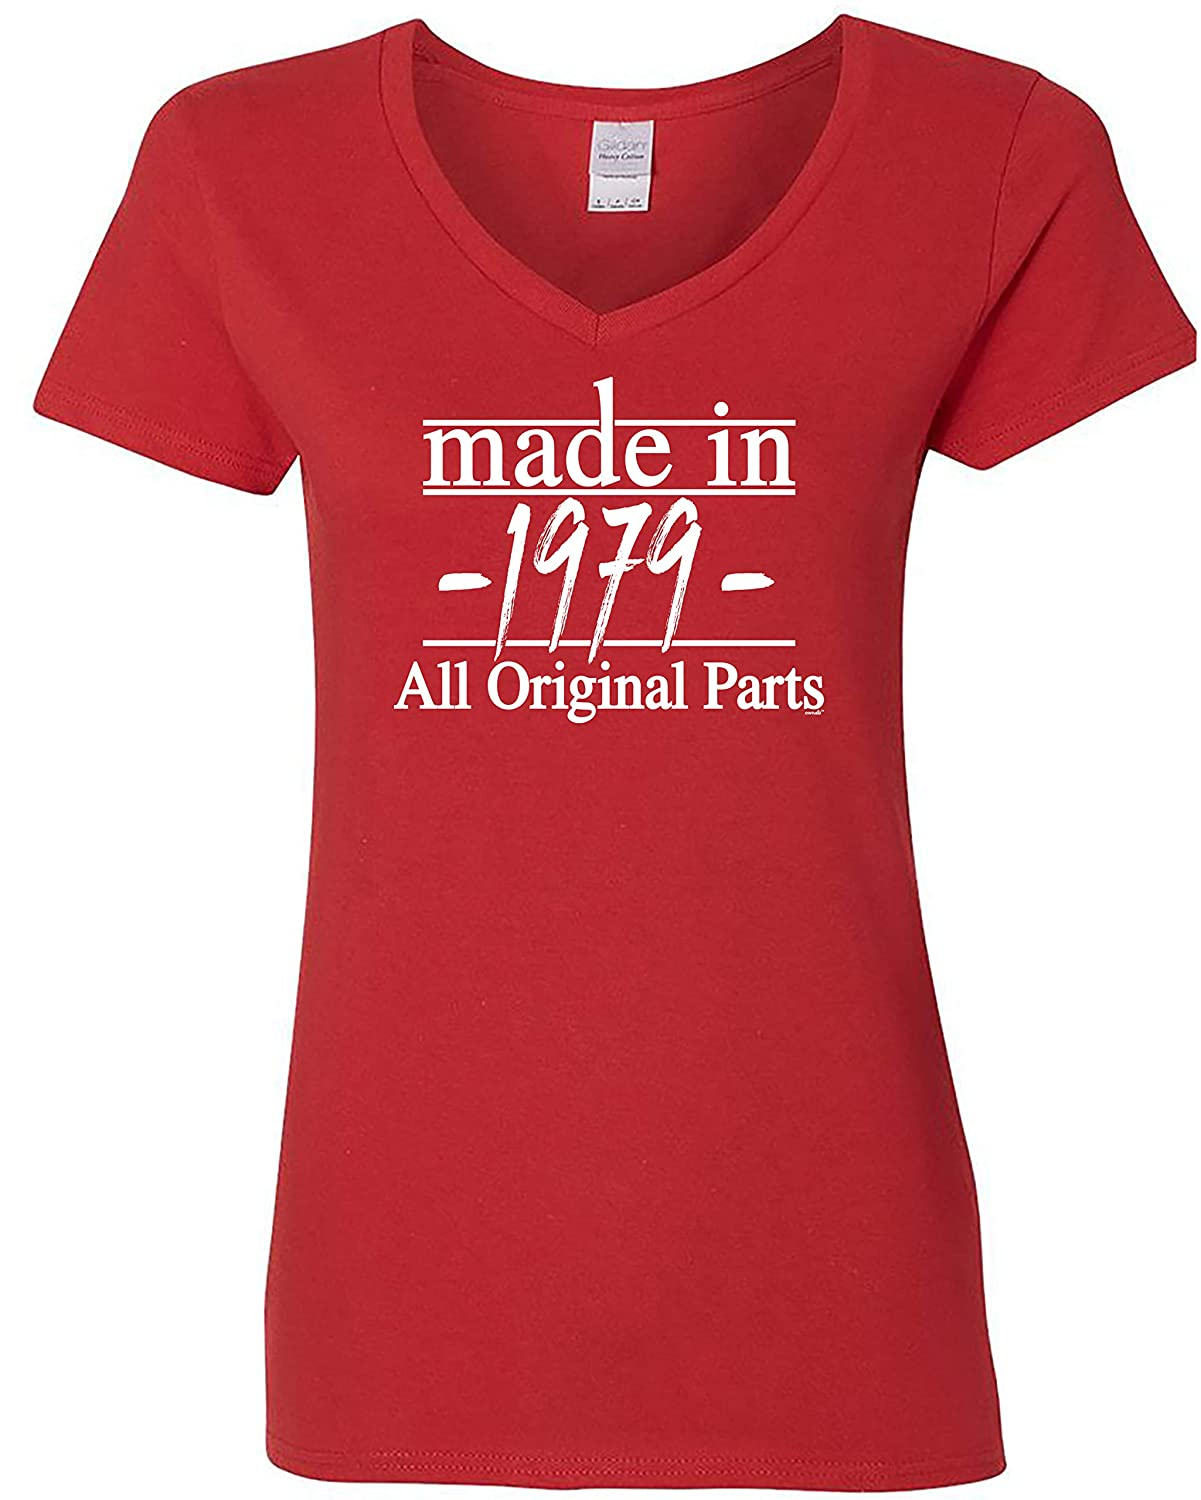 40th Birthday Gifts Made in 1979 All Original Parts Women V-Neck Tee